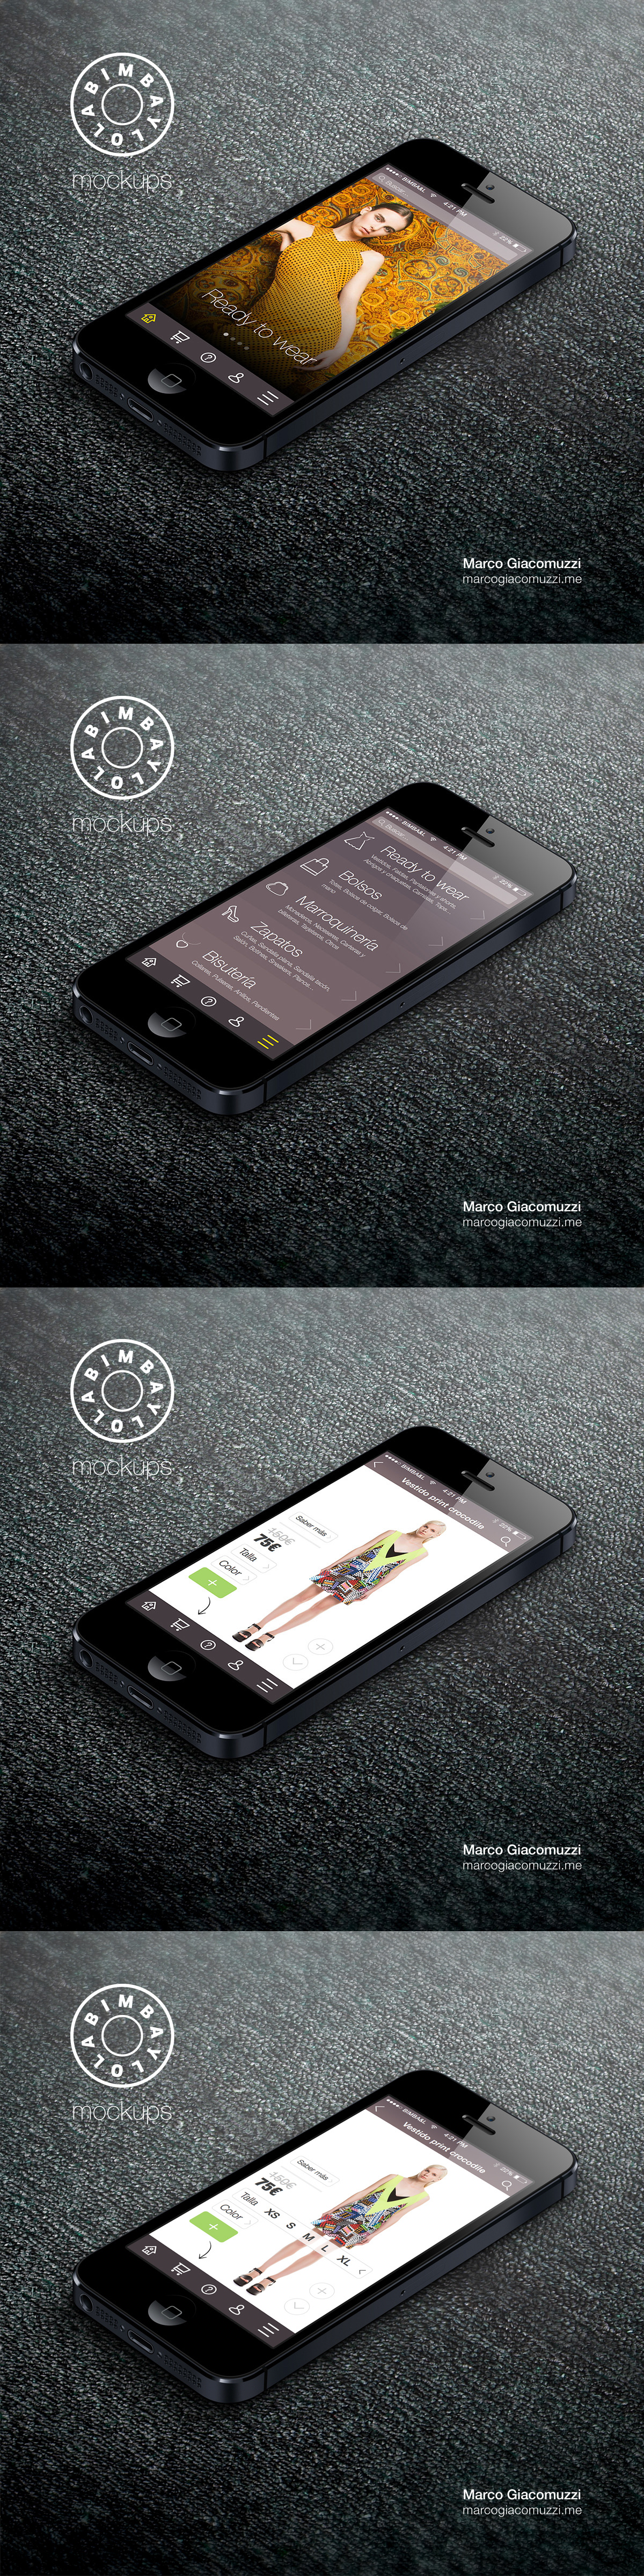 iphone,UI,Ecommerce,smartphone,inspiration